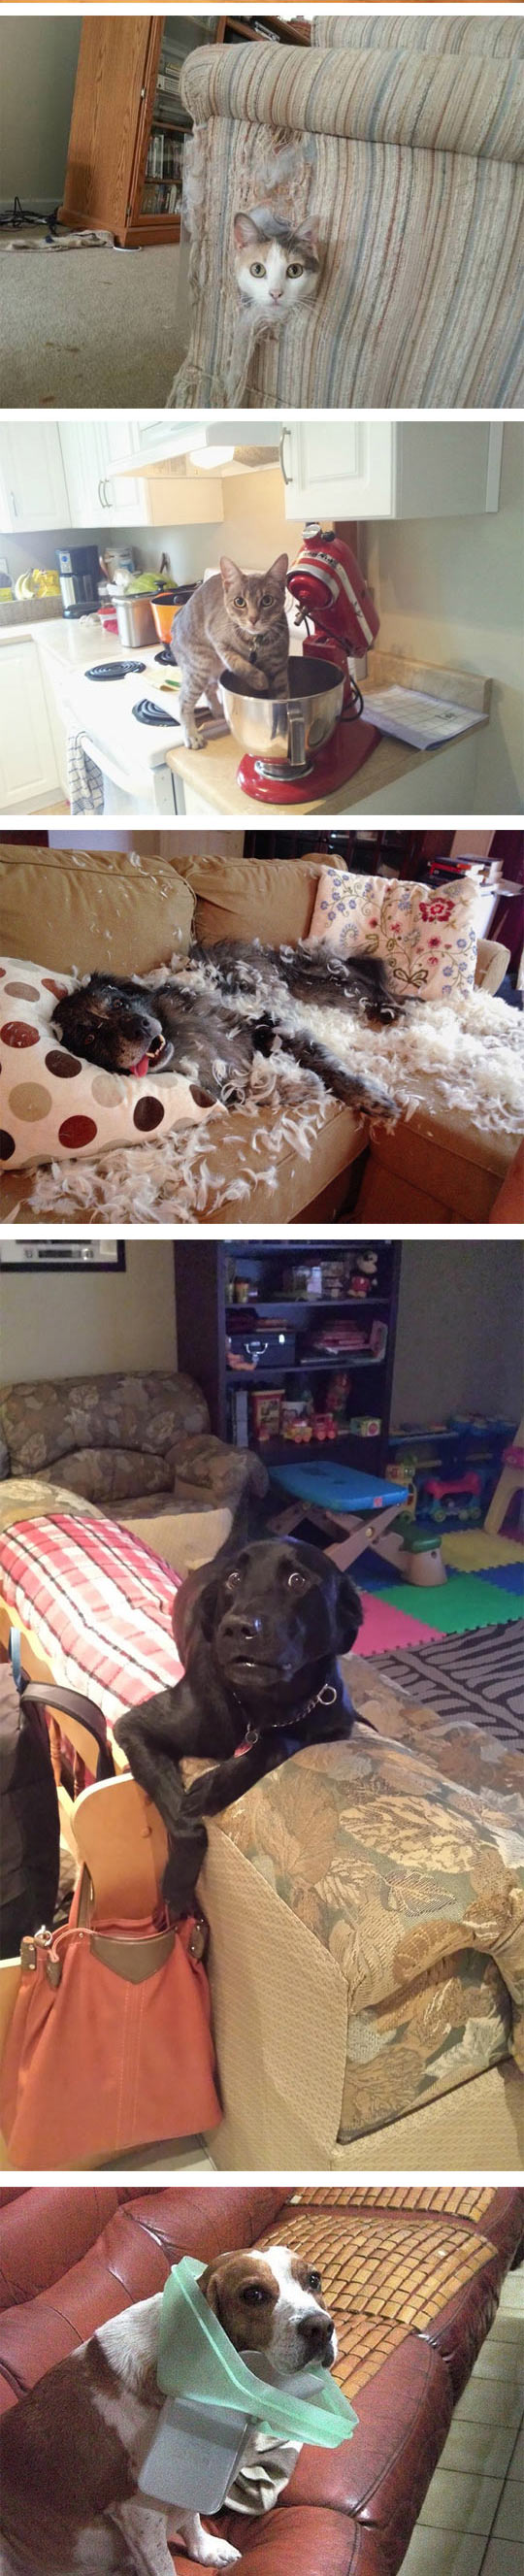 funny-cat-toy-awkward-moment-collections-dogs